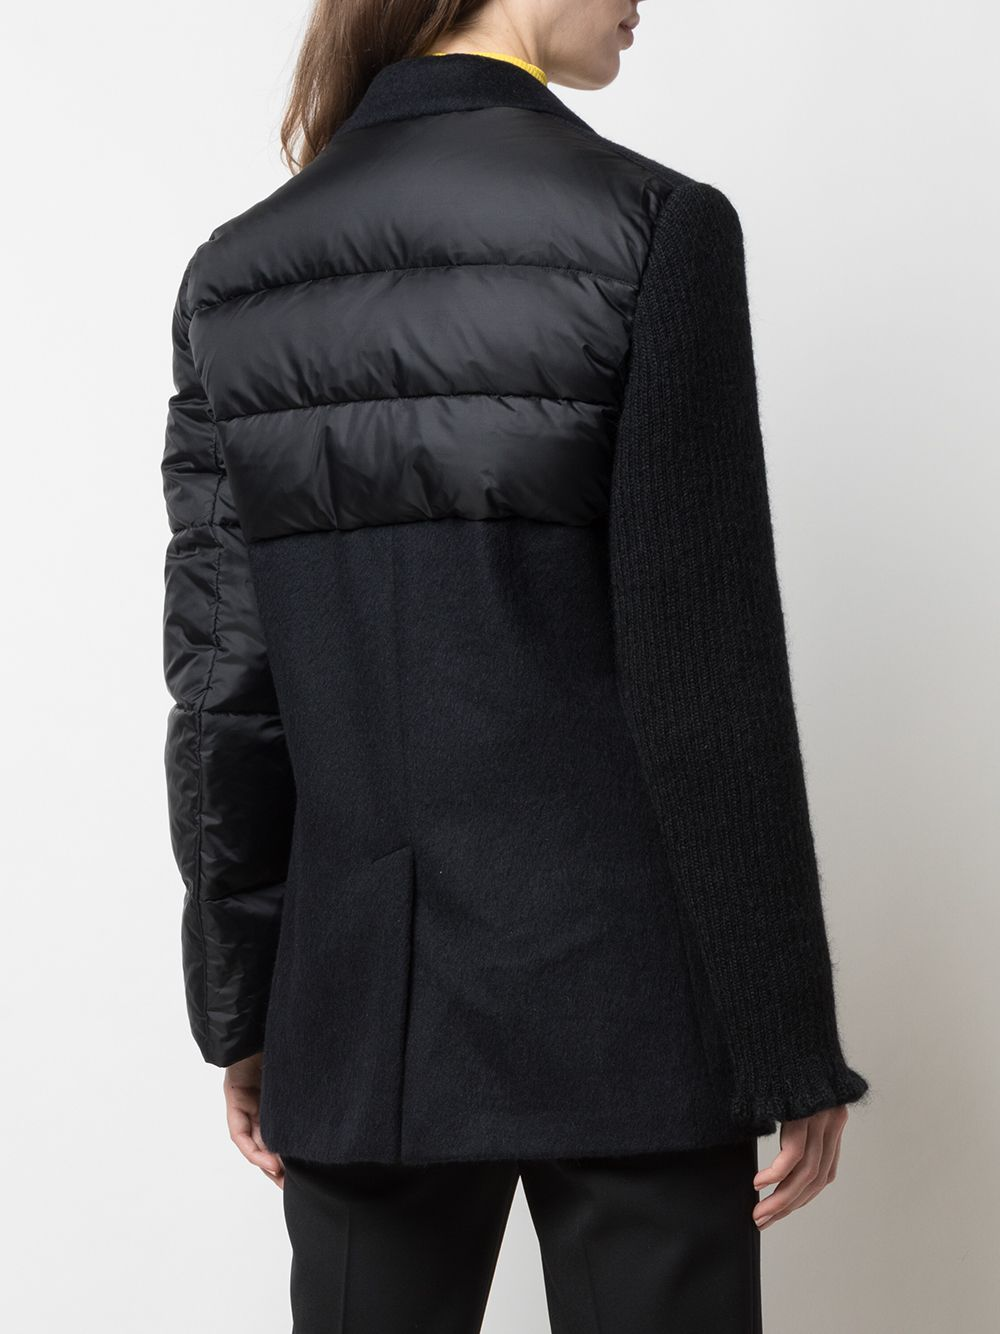 UNDERCOVER WOMEN DOWN SLEEVE DOUBLE BREASTED JACKET